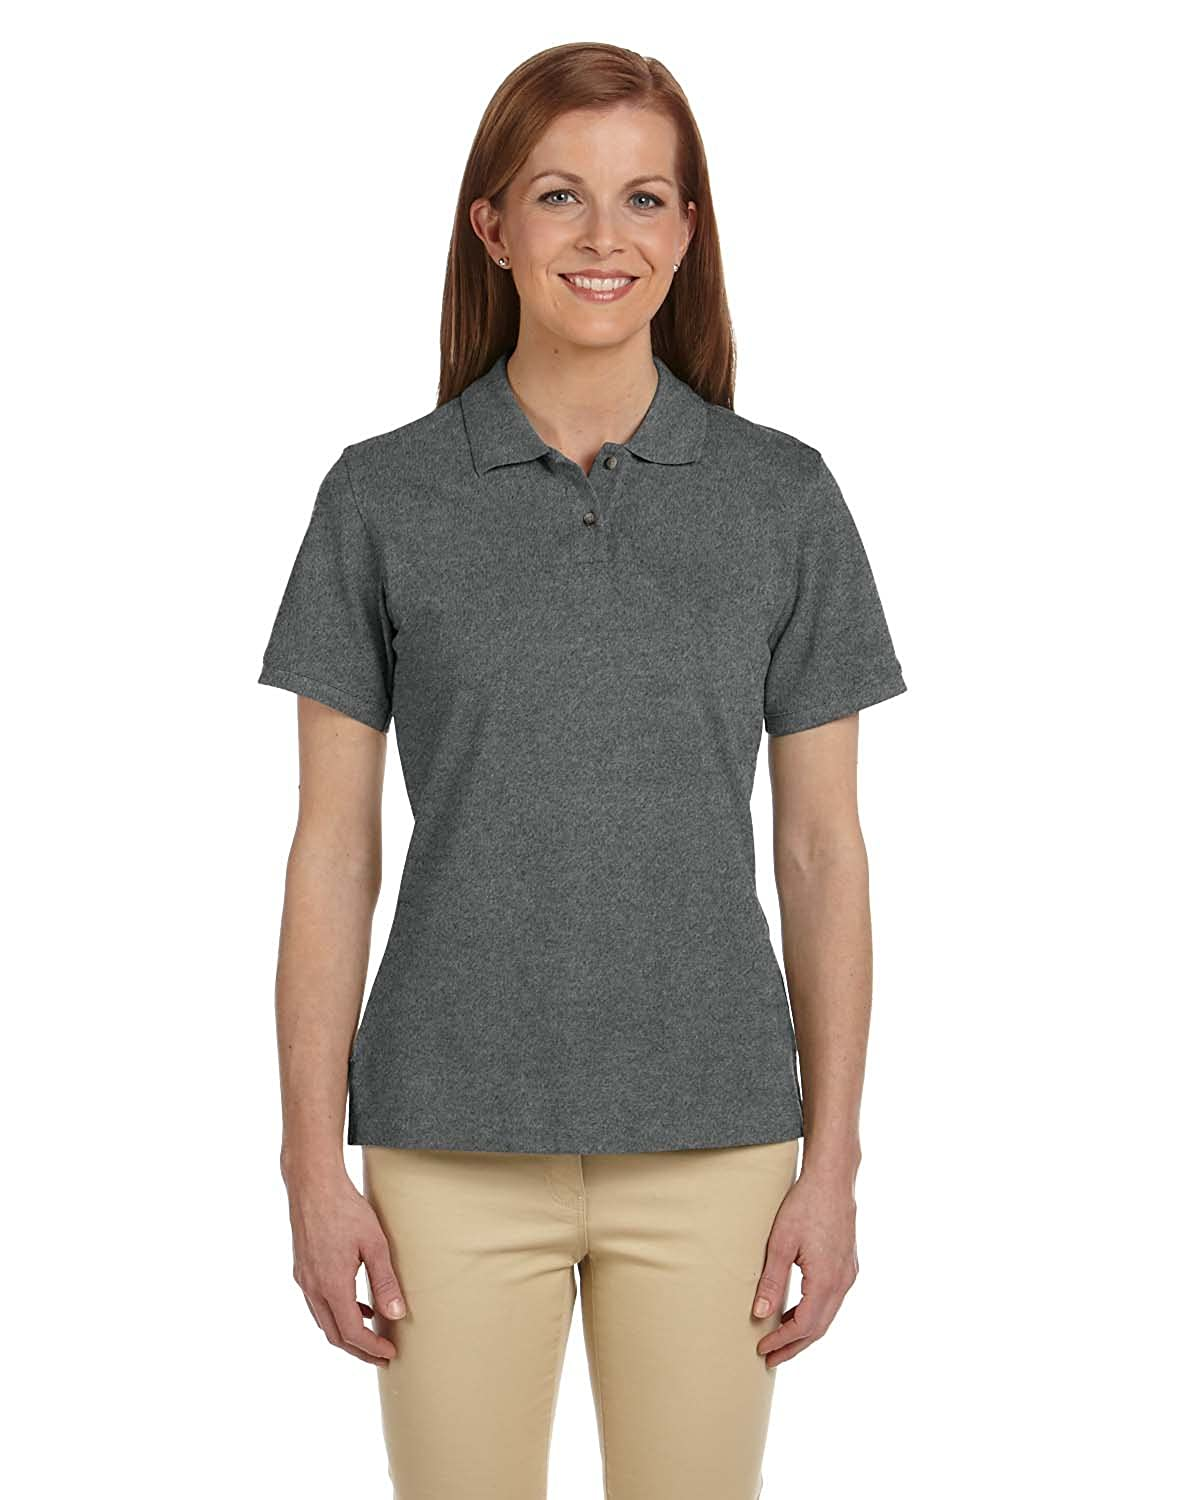 CHARCOAL Ringspun Cotton Piqu? Short-Sleeve Polo Ladies 6 oz M Ladies .